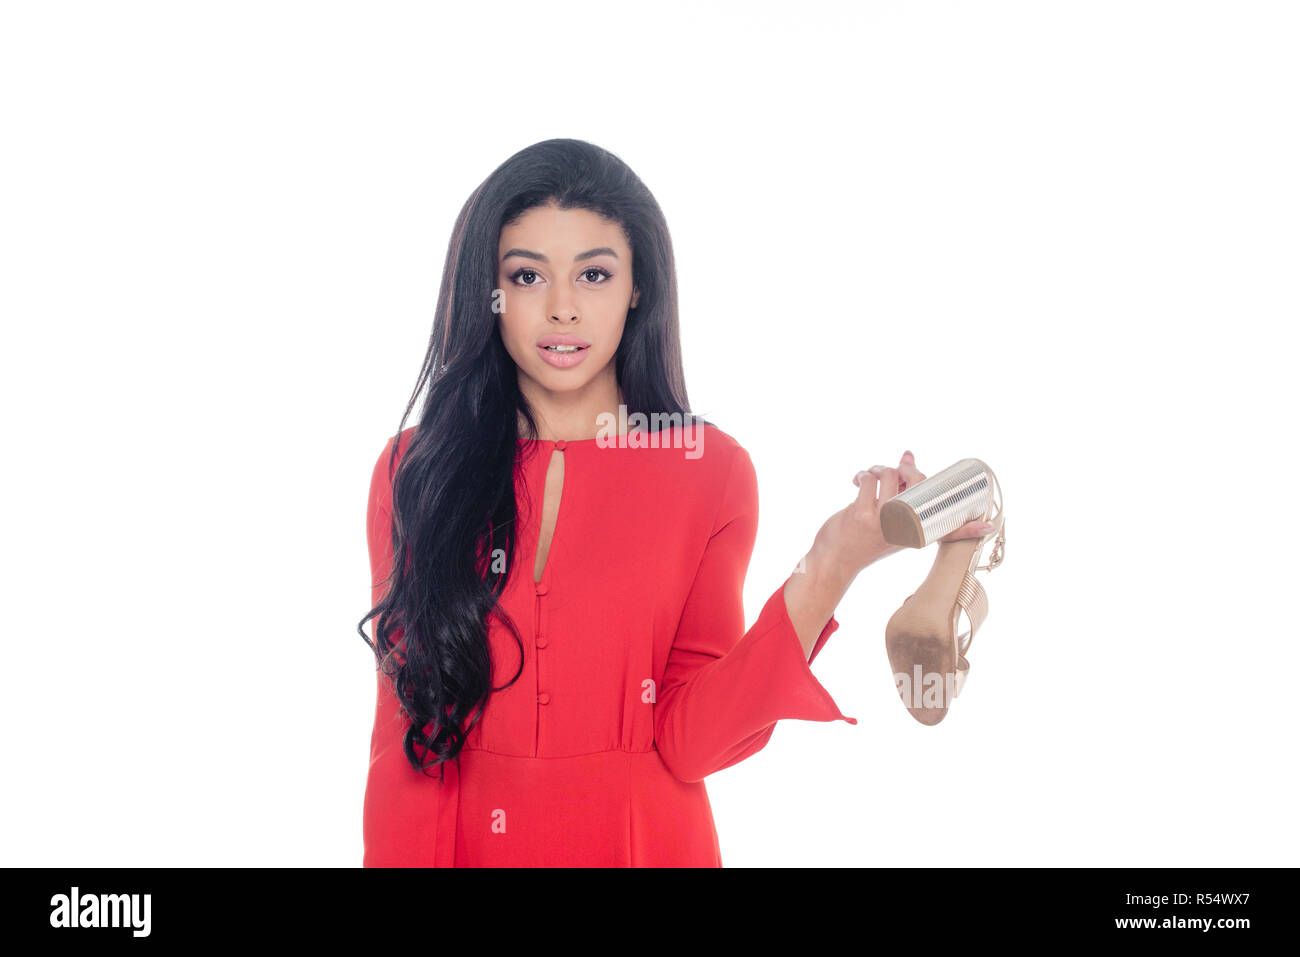 fa297bf9aed1 african american girl in red dress holding sandals with heels isolated on  white